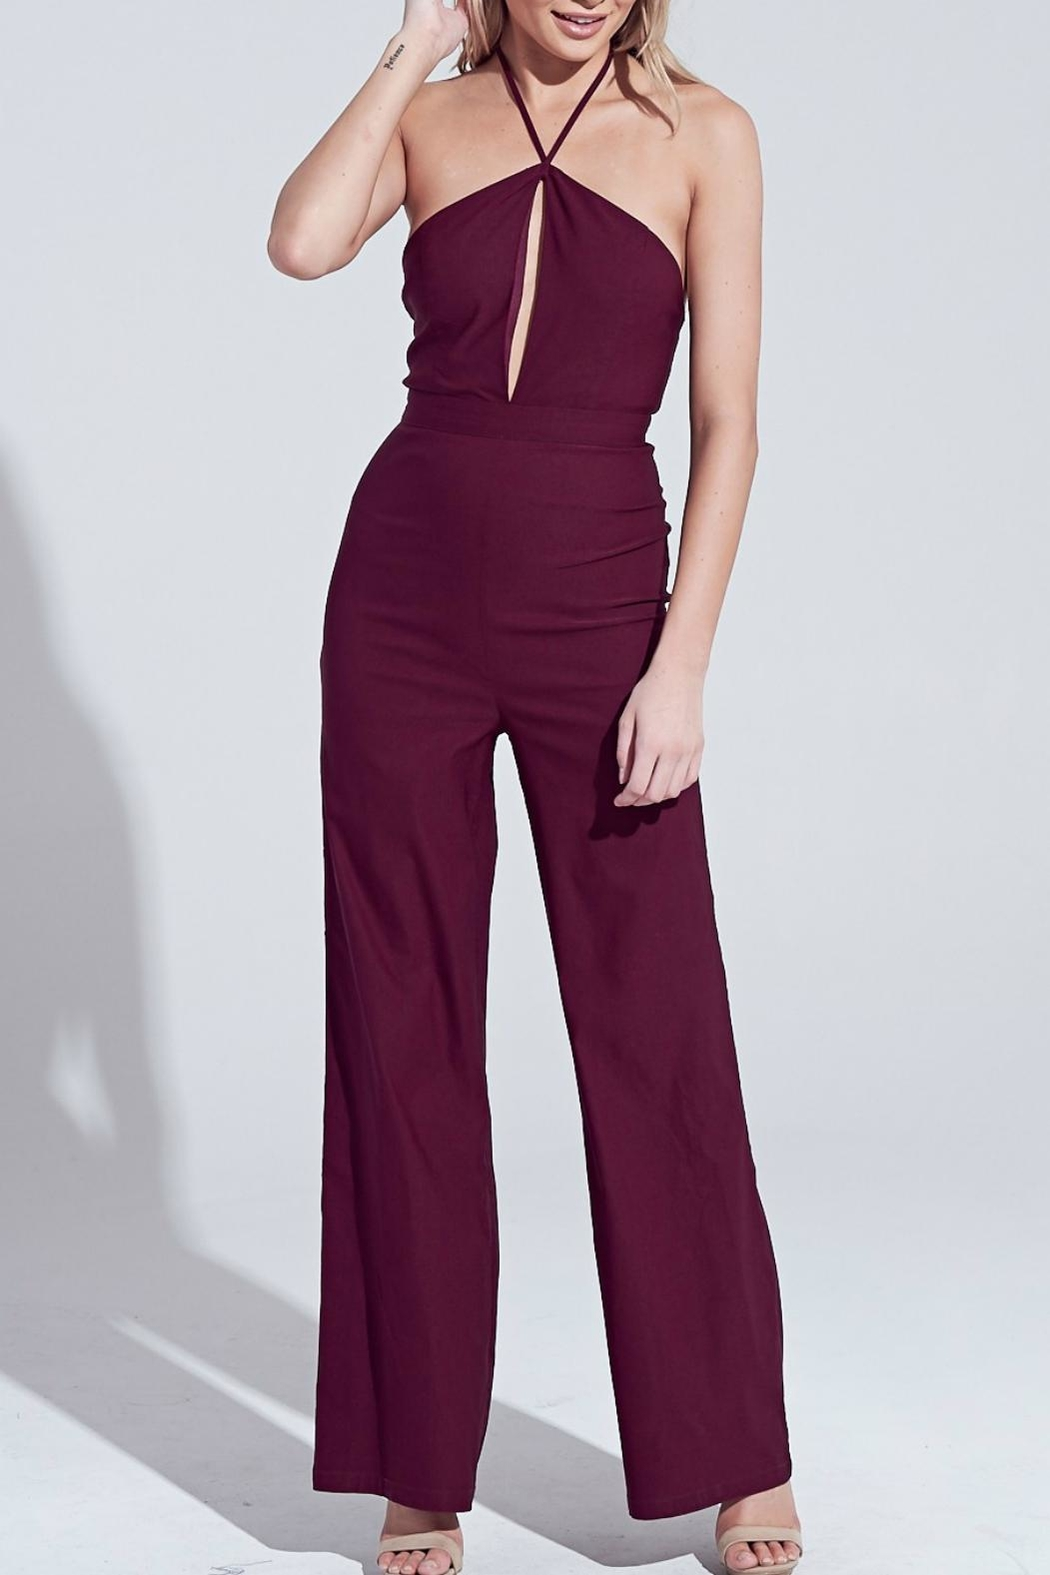 Pretty Little Things Peekaboo Halter Jumpsuit - Front Cropped Image